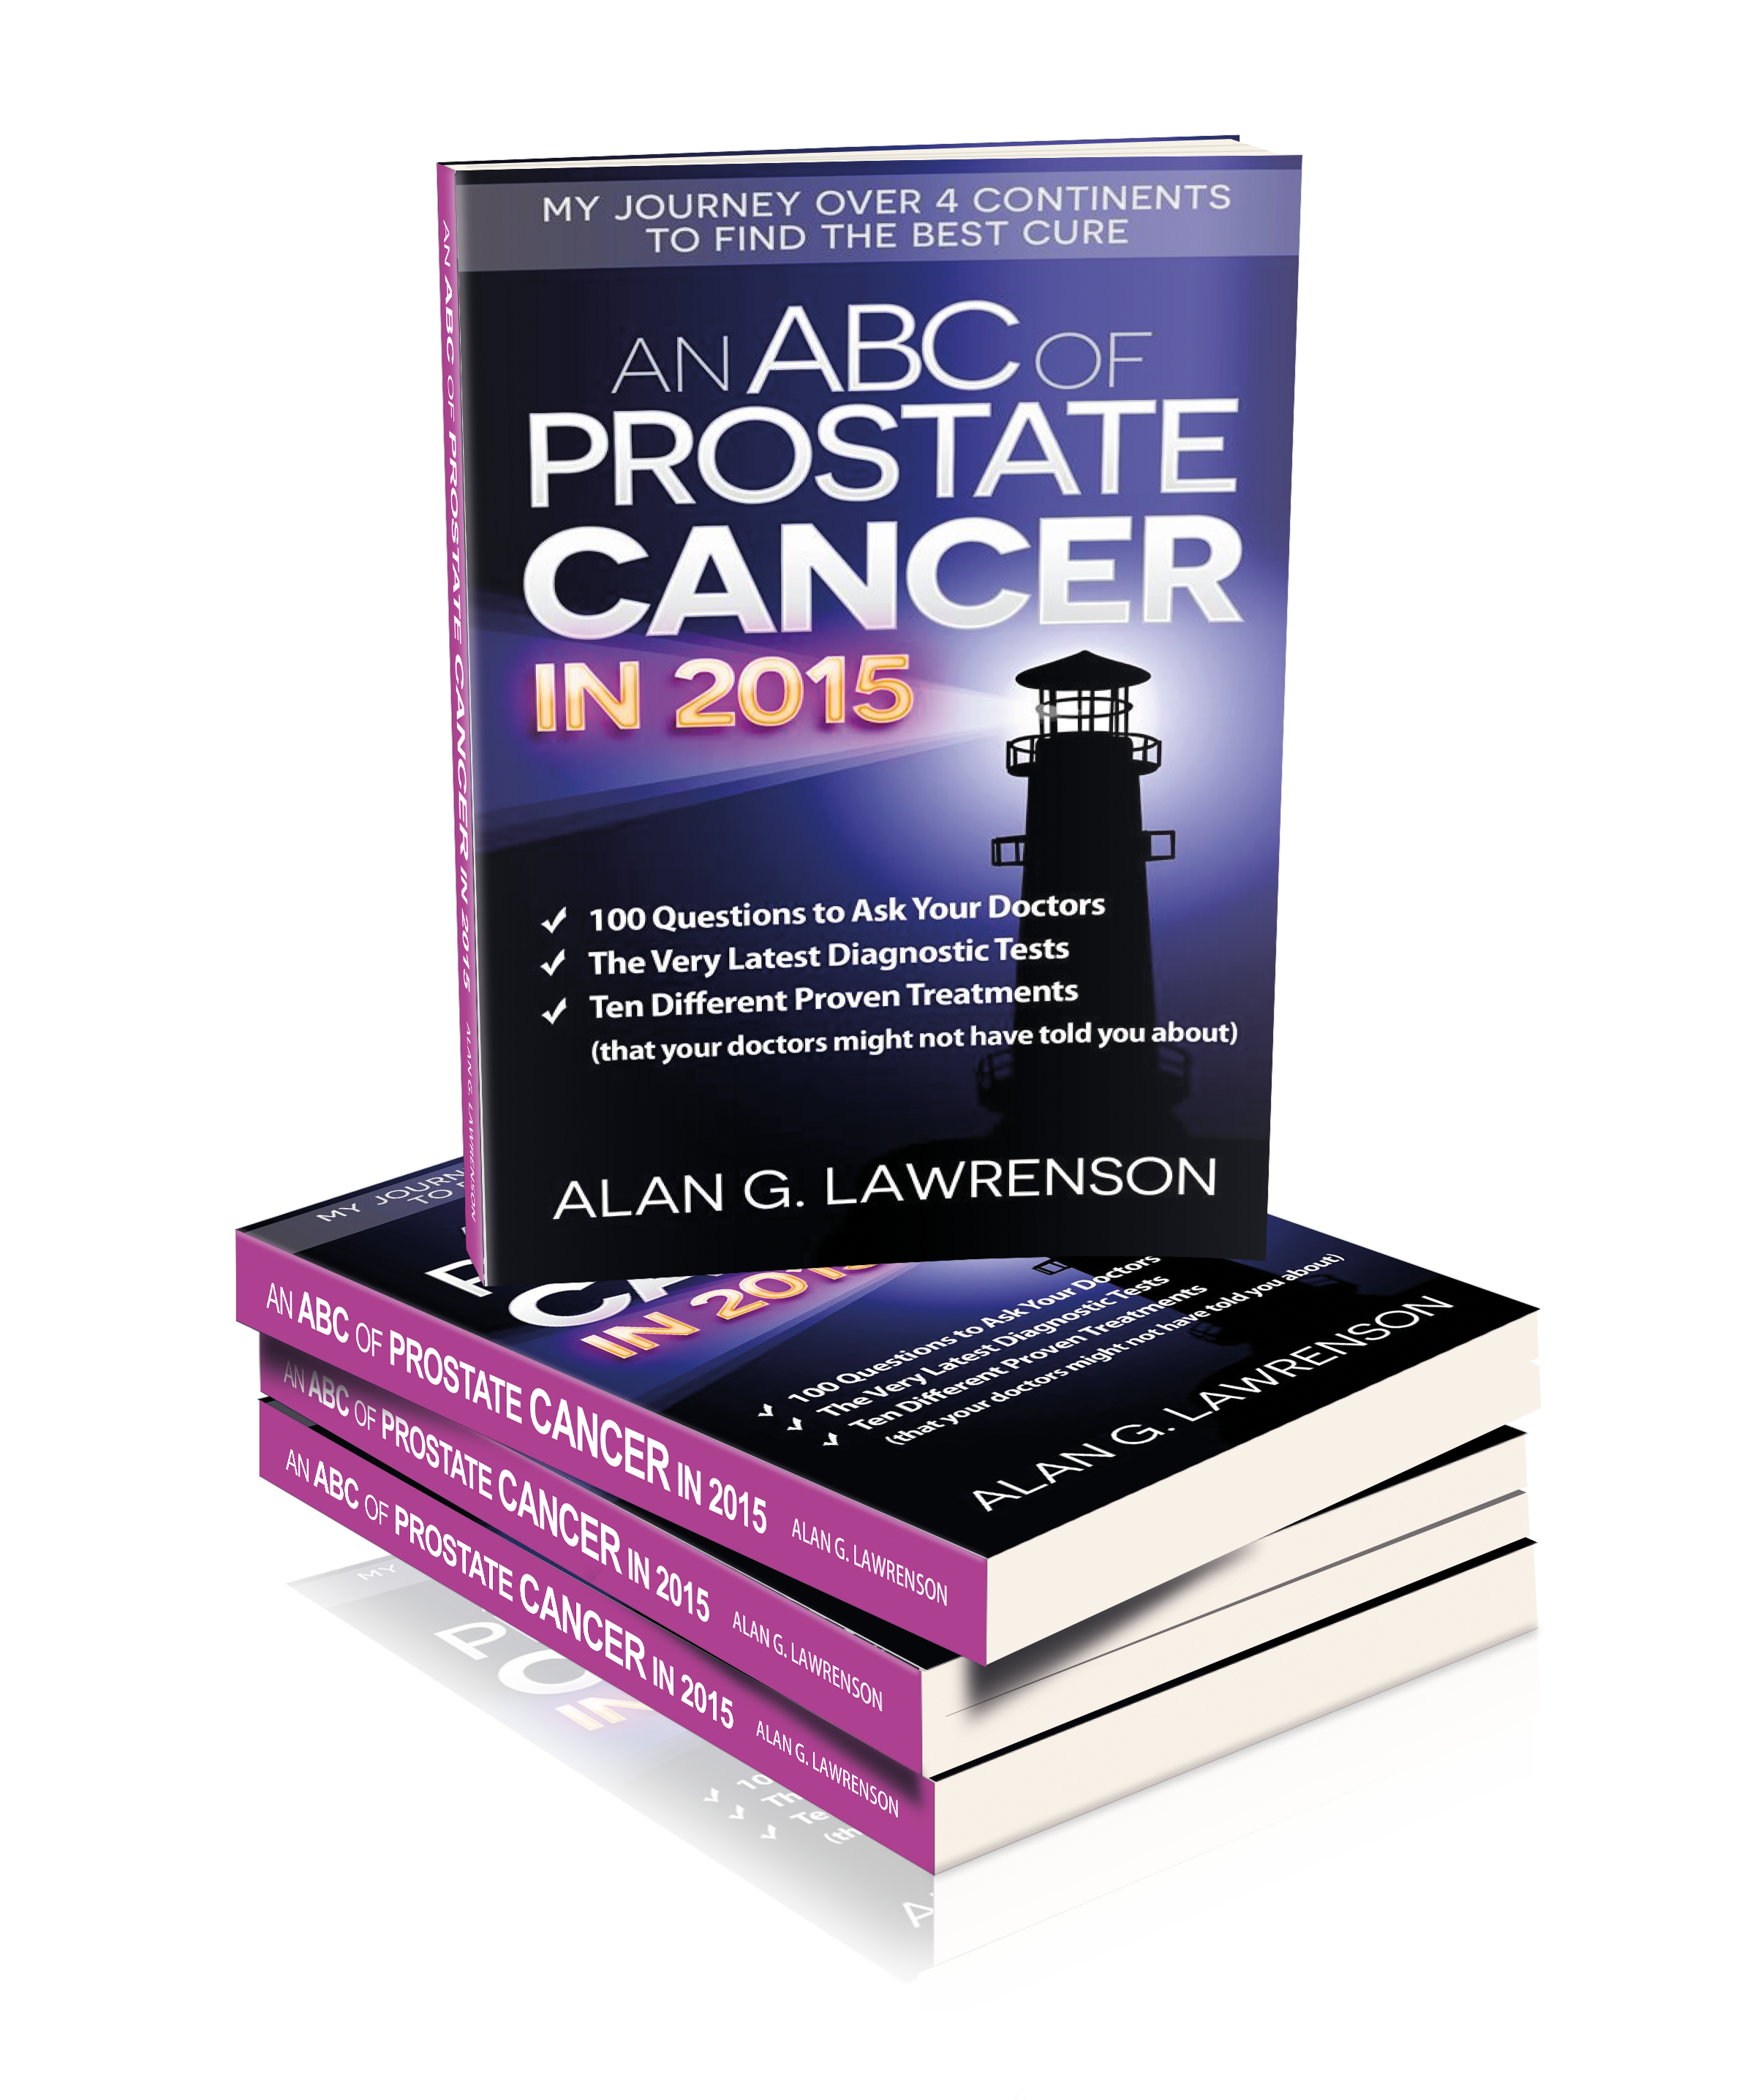 The ABCs of Prostate Cancer